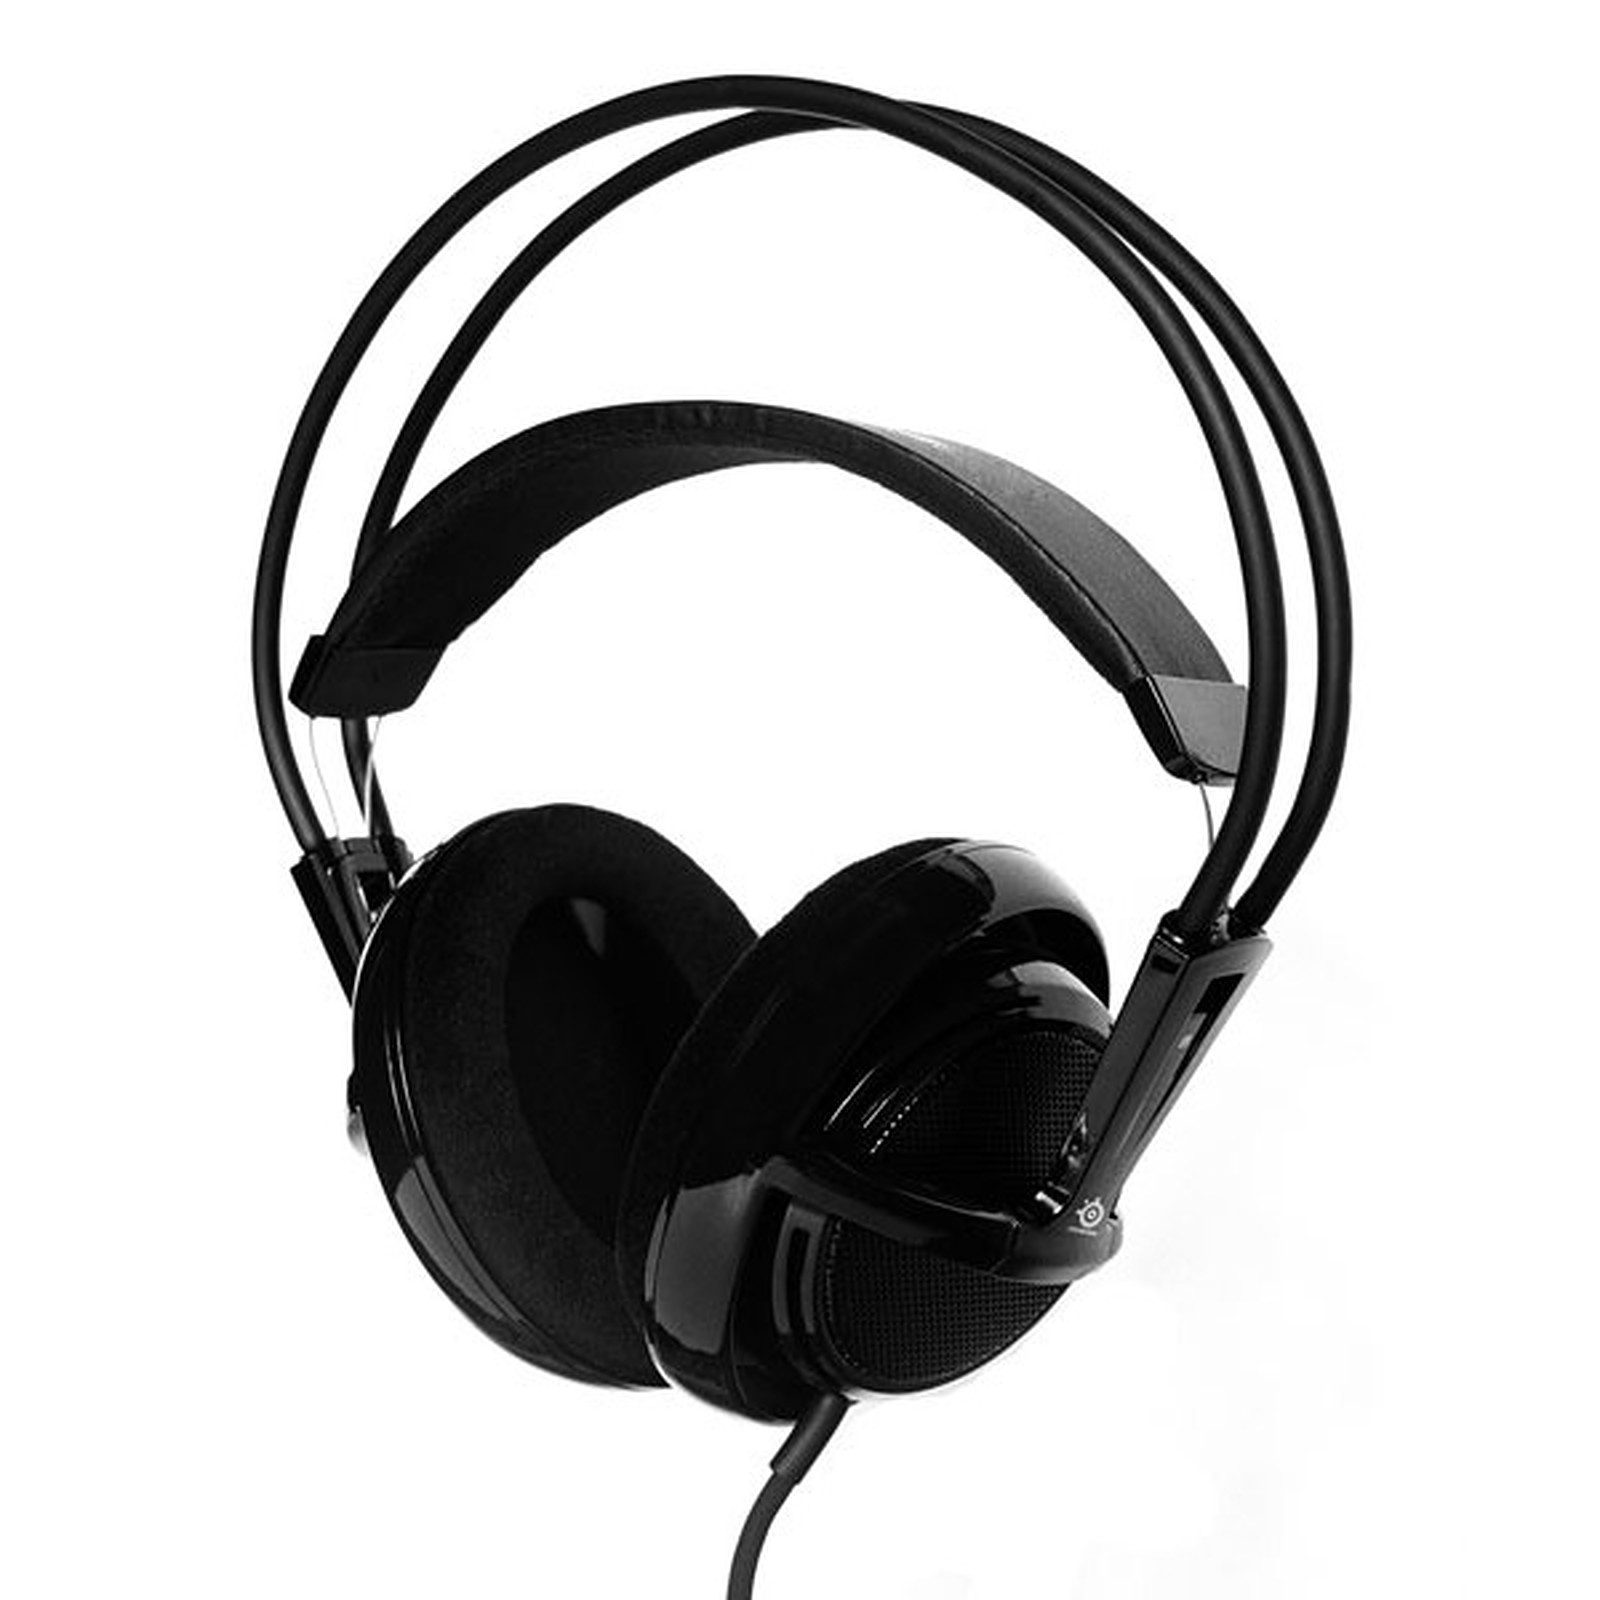 SteelSeries Siberia (coloris noir)